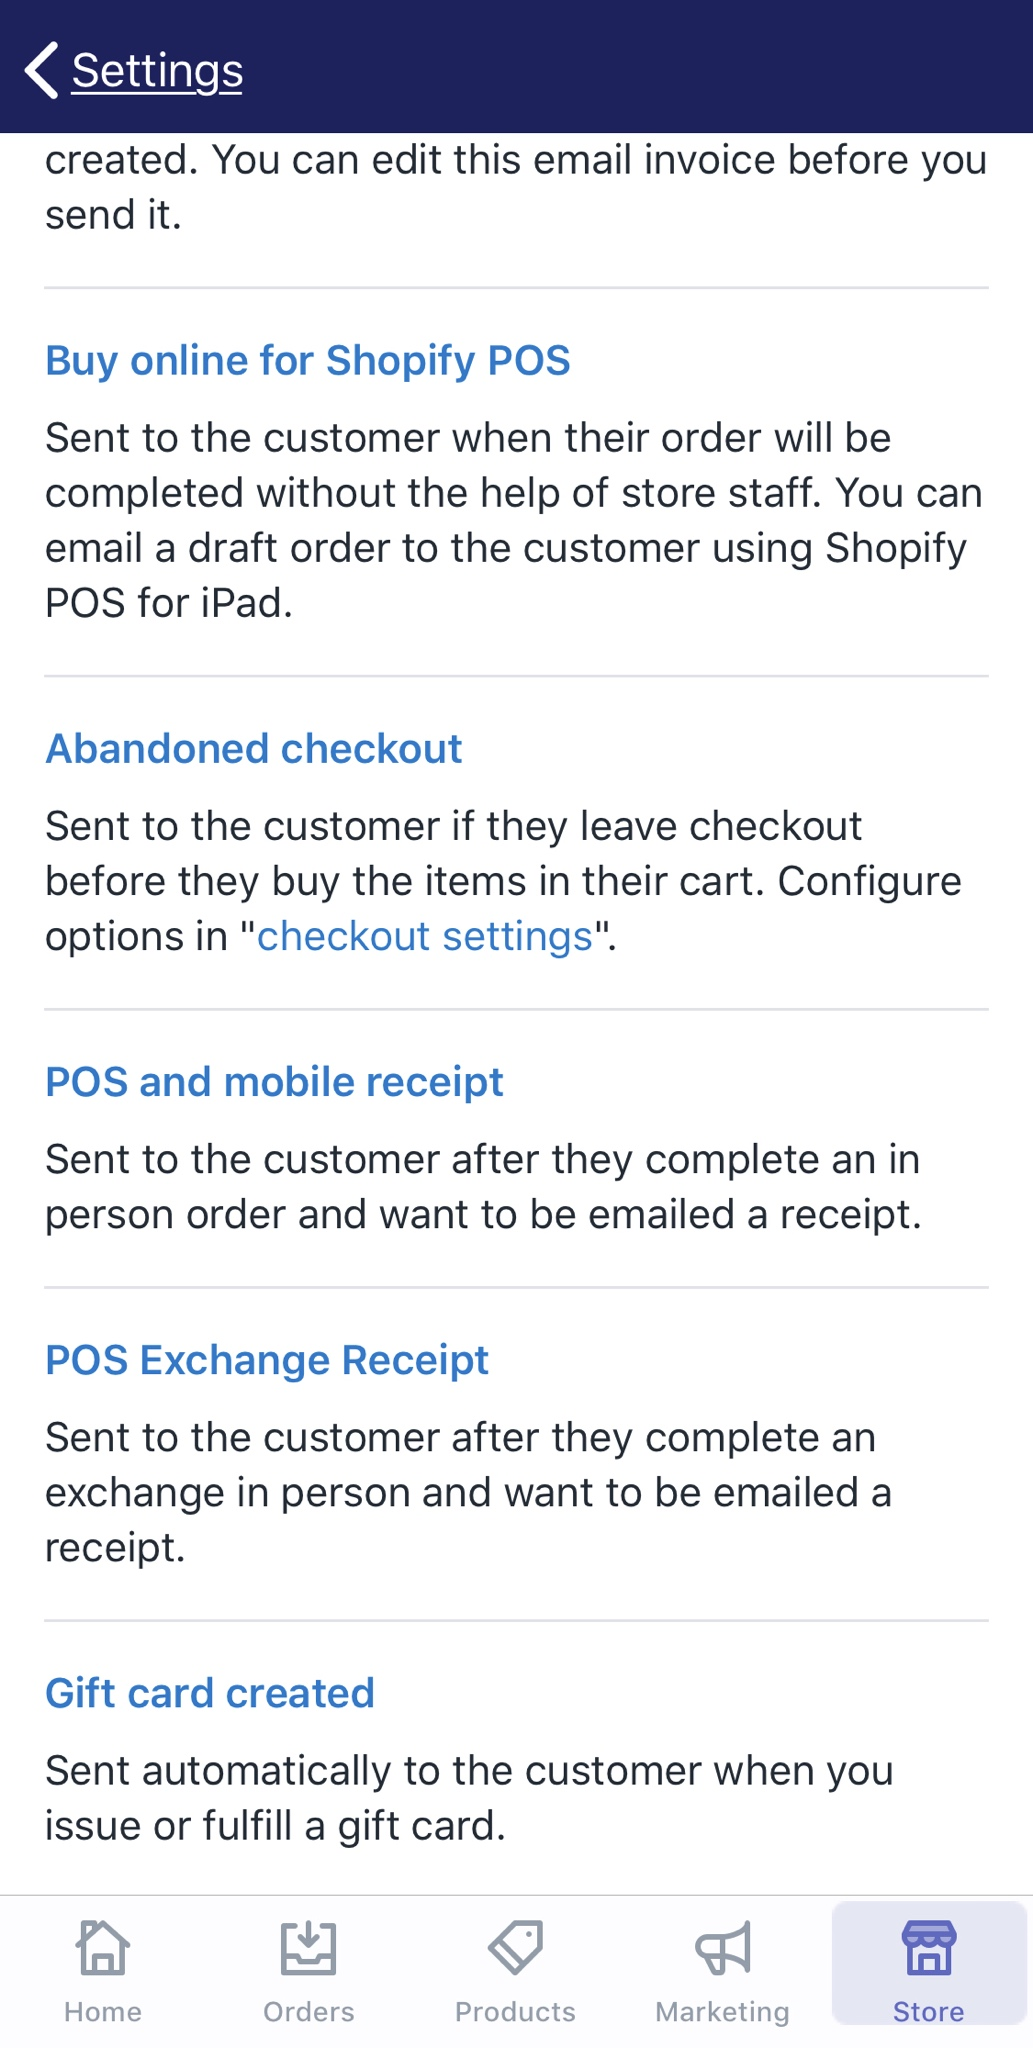 How to edit the abandoned checkout recovery notification